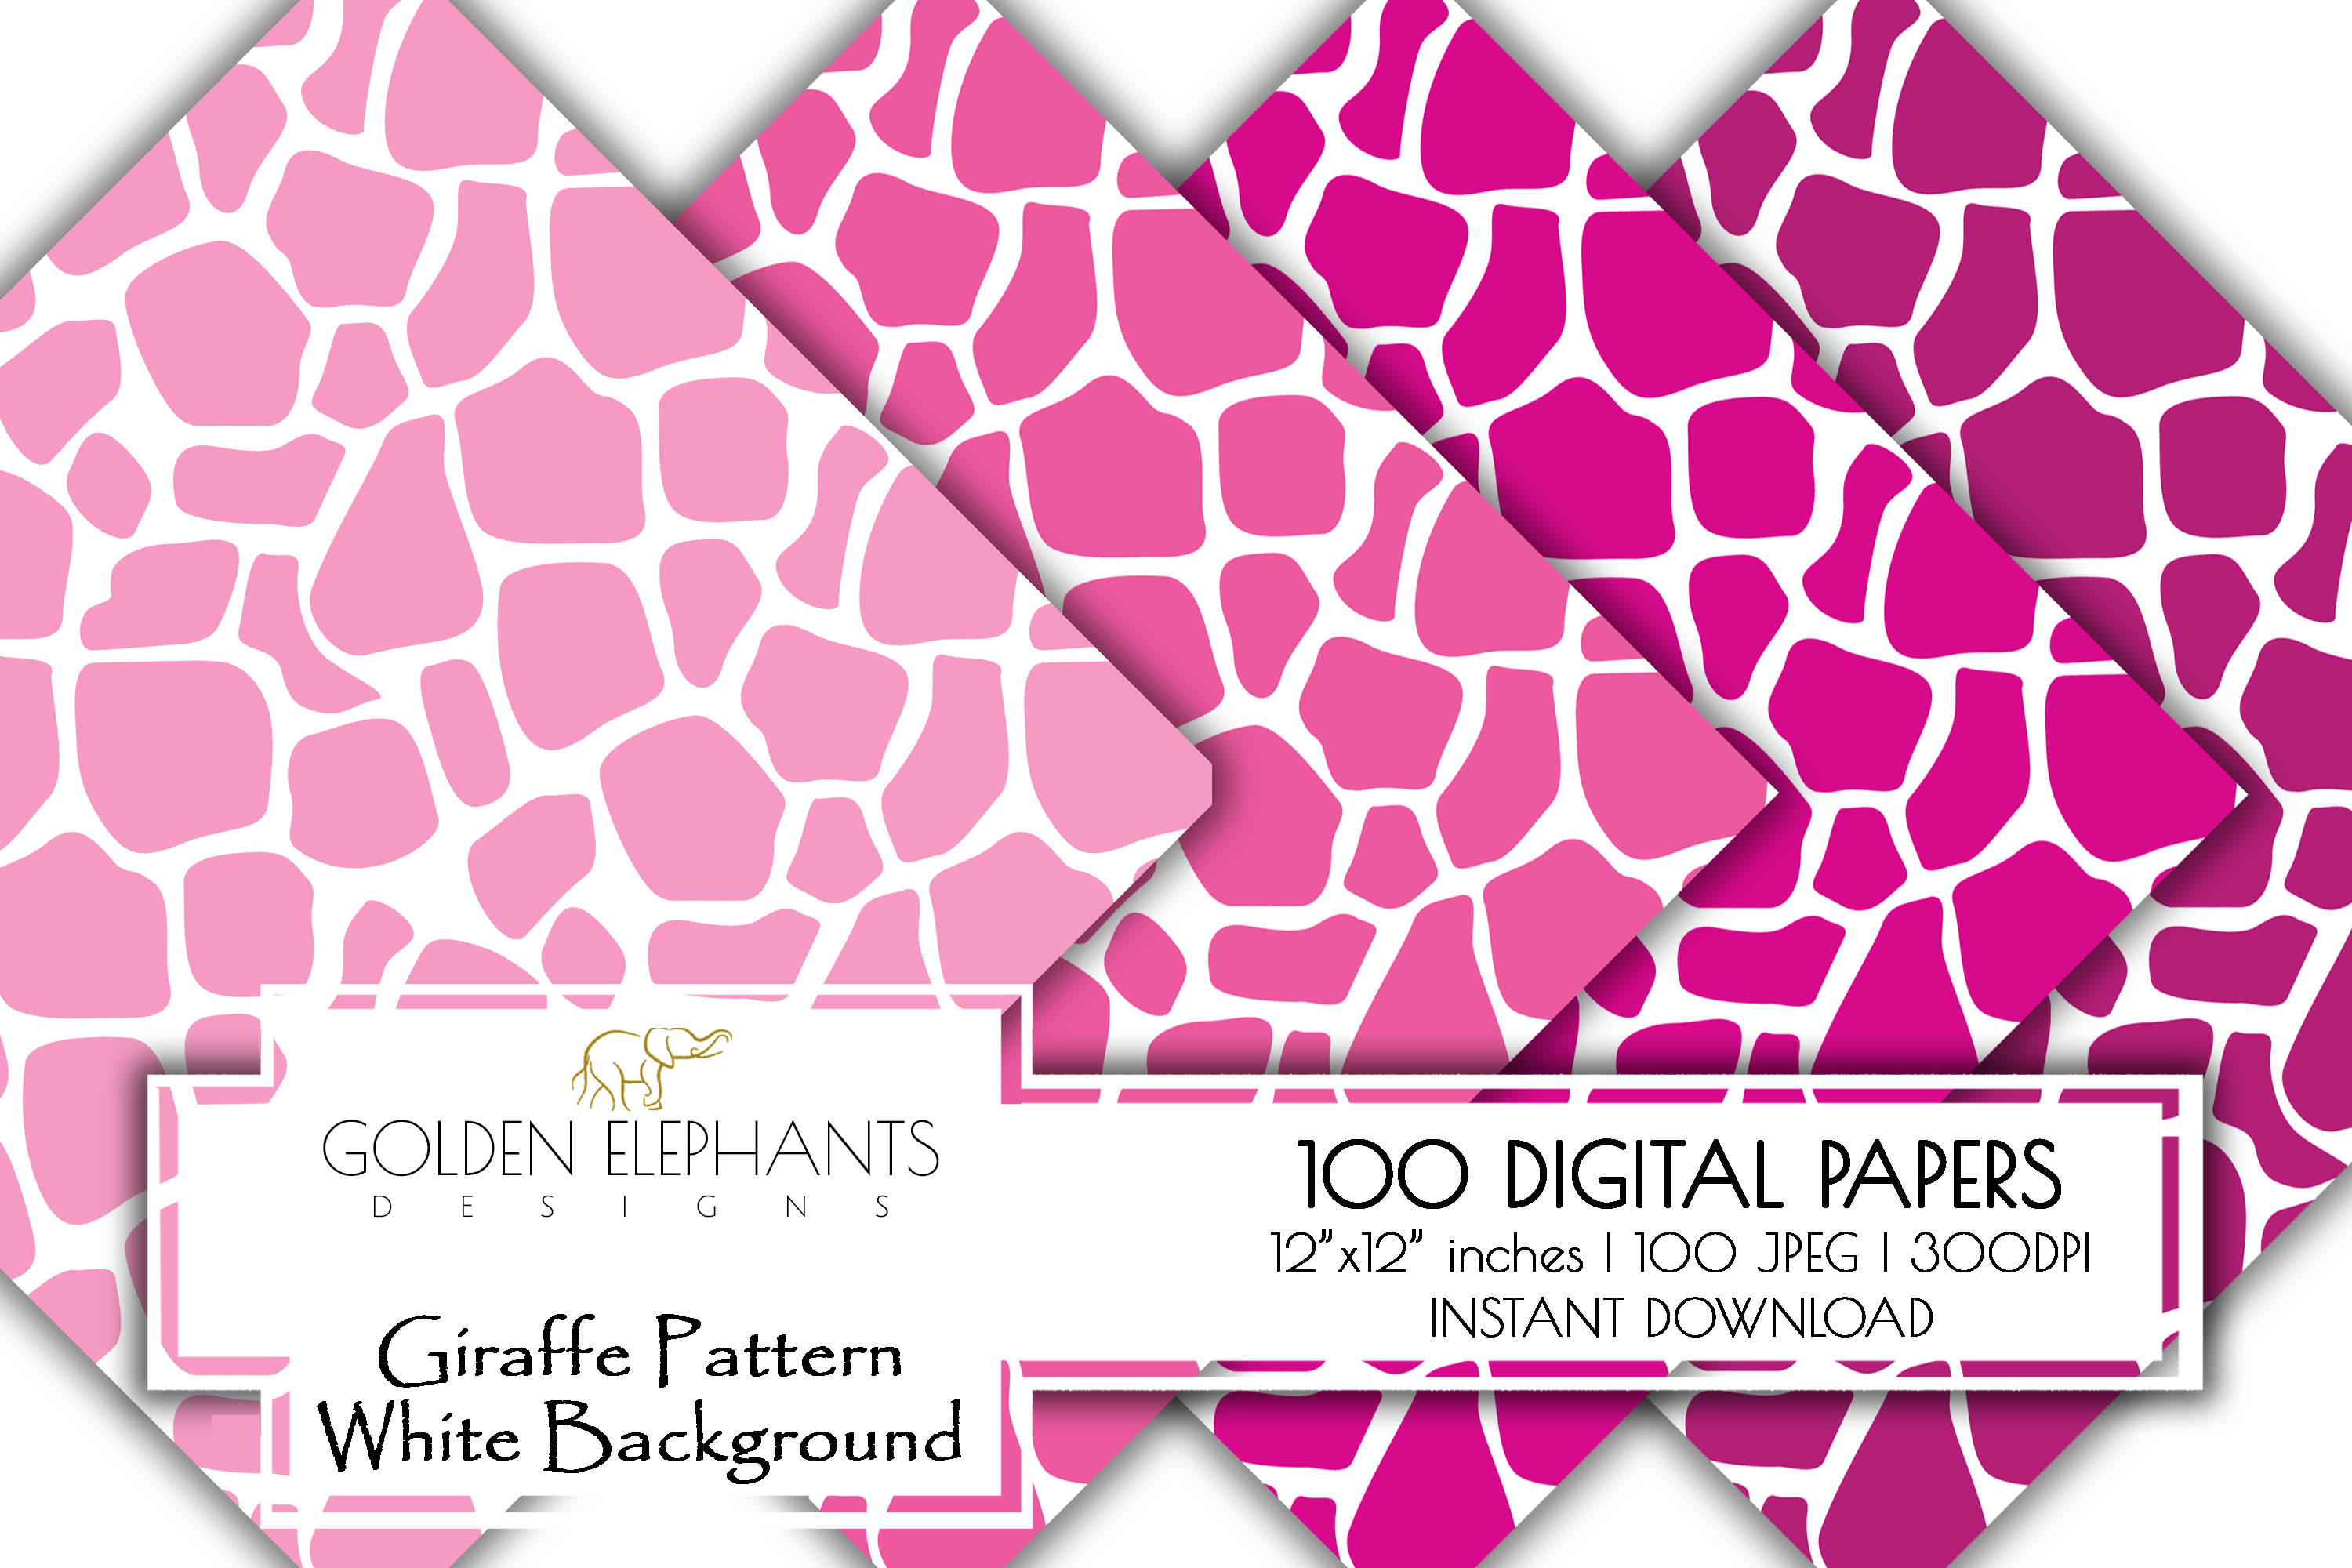 100 Giraffe Pattern w/ White Background Digital Paper example image 5